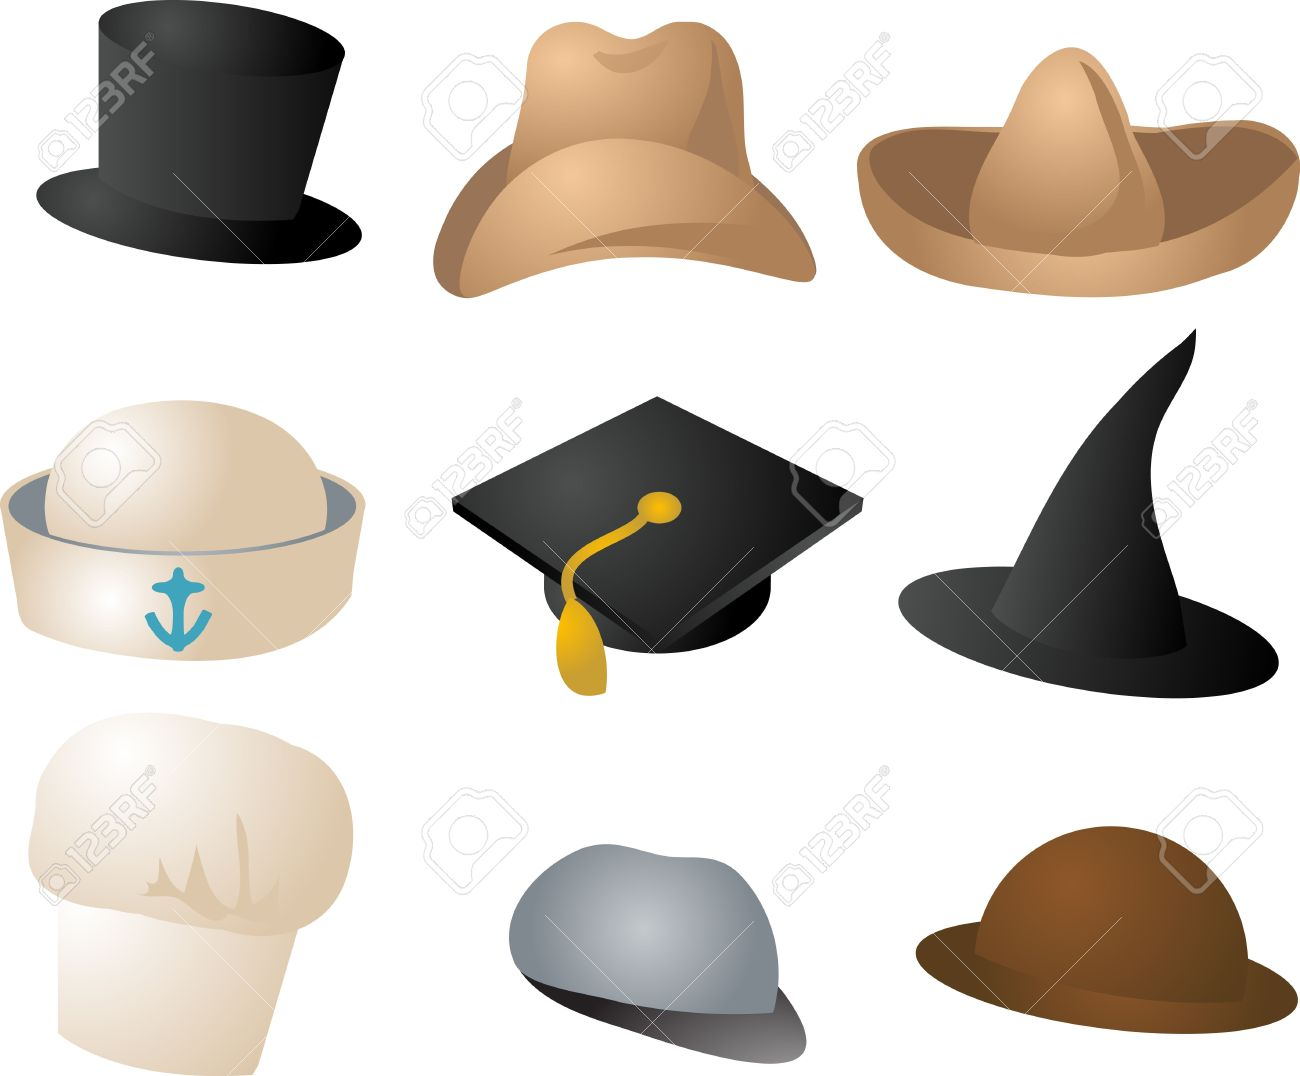 Various cliparts clipart black and white stock Various cliparts - ClipartFox clipart black and white stock